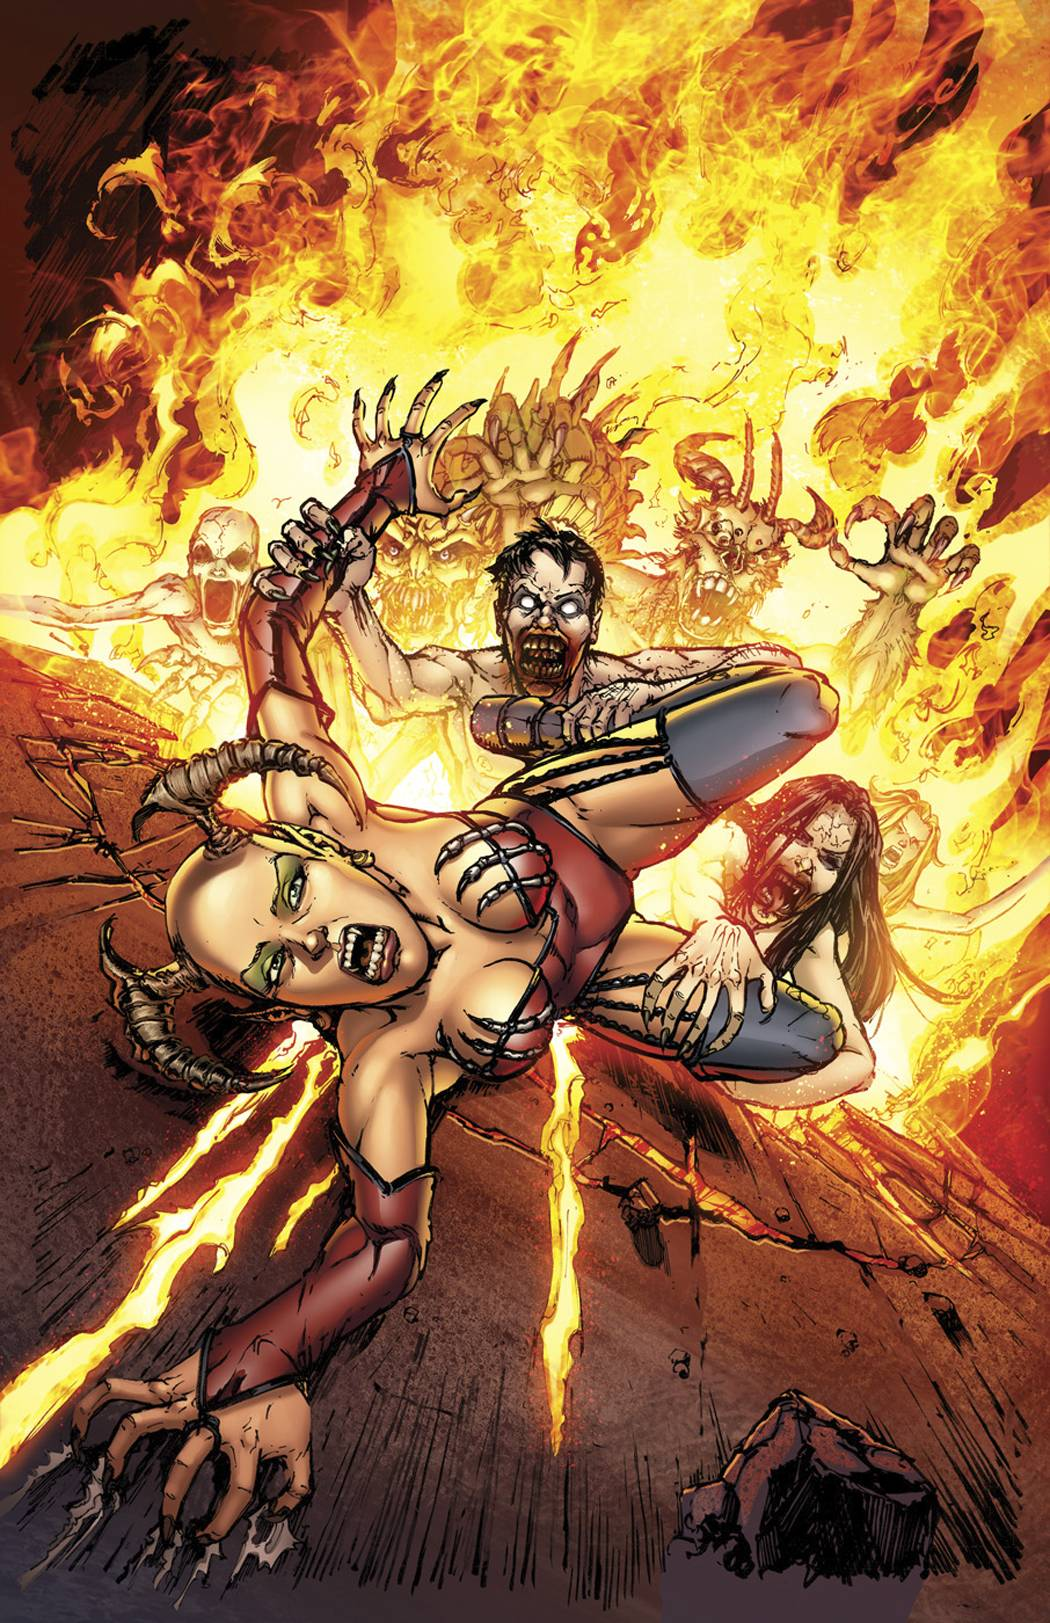 Grimm Fairy Tales Presents Inferno: Rings of Hell Vol 1 2